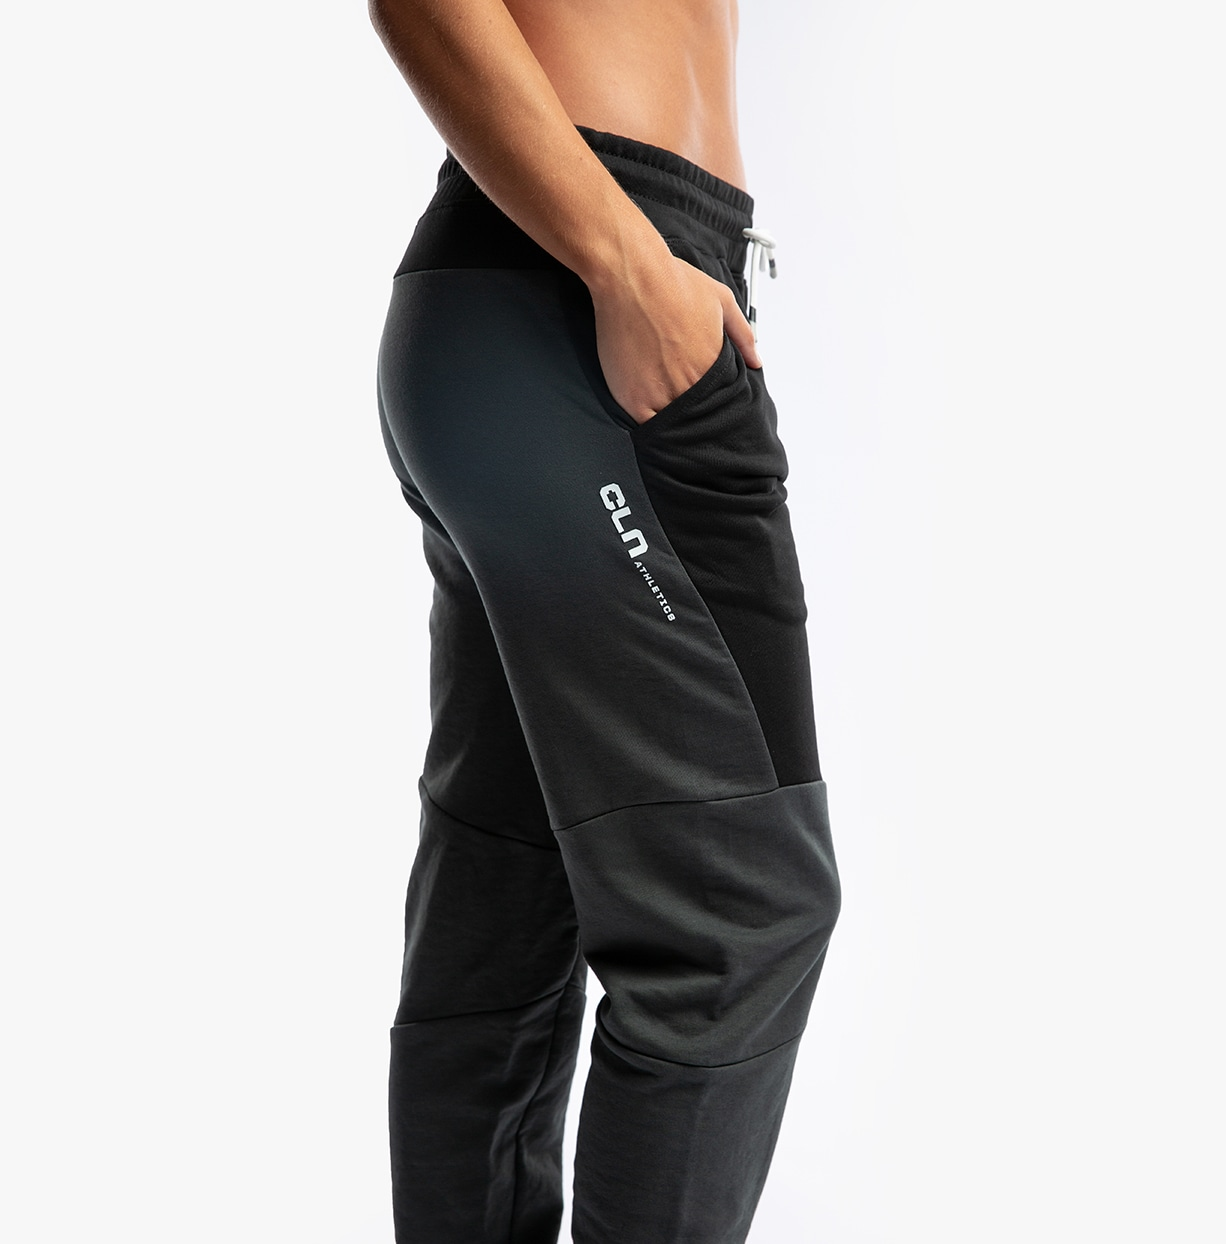 CLN Swatch ws Pants Black